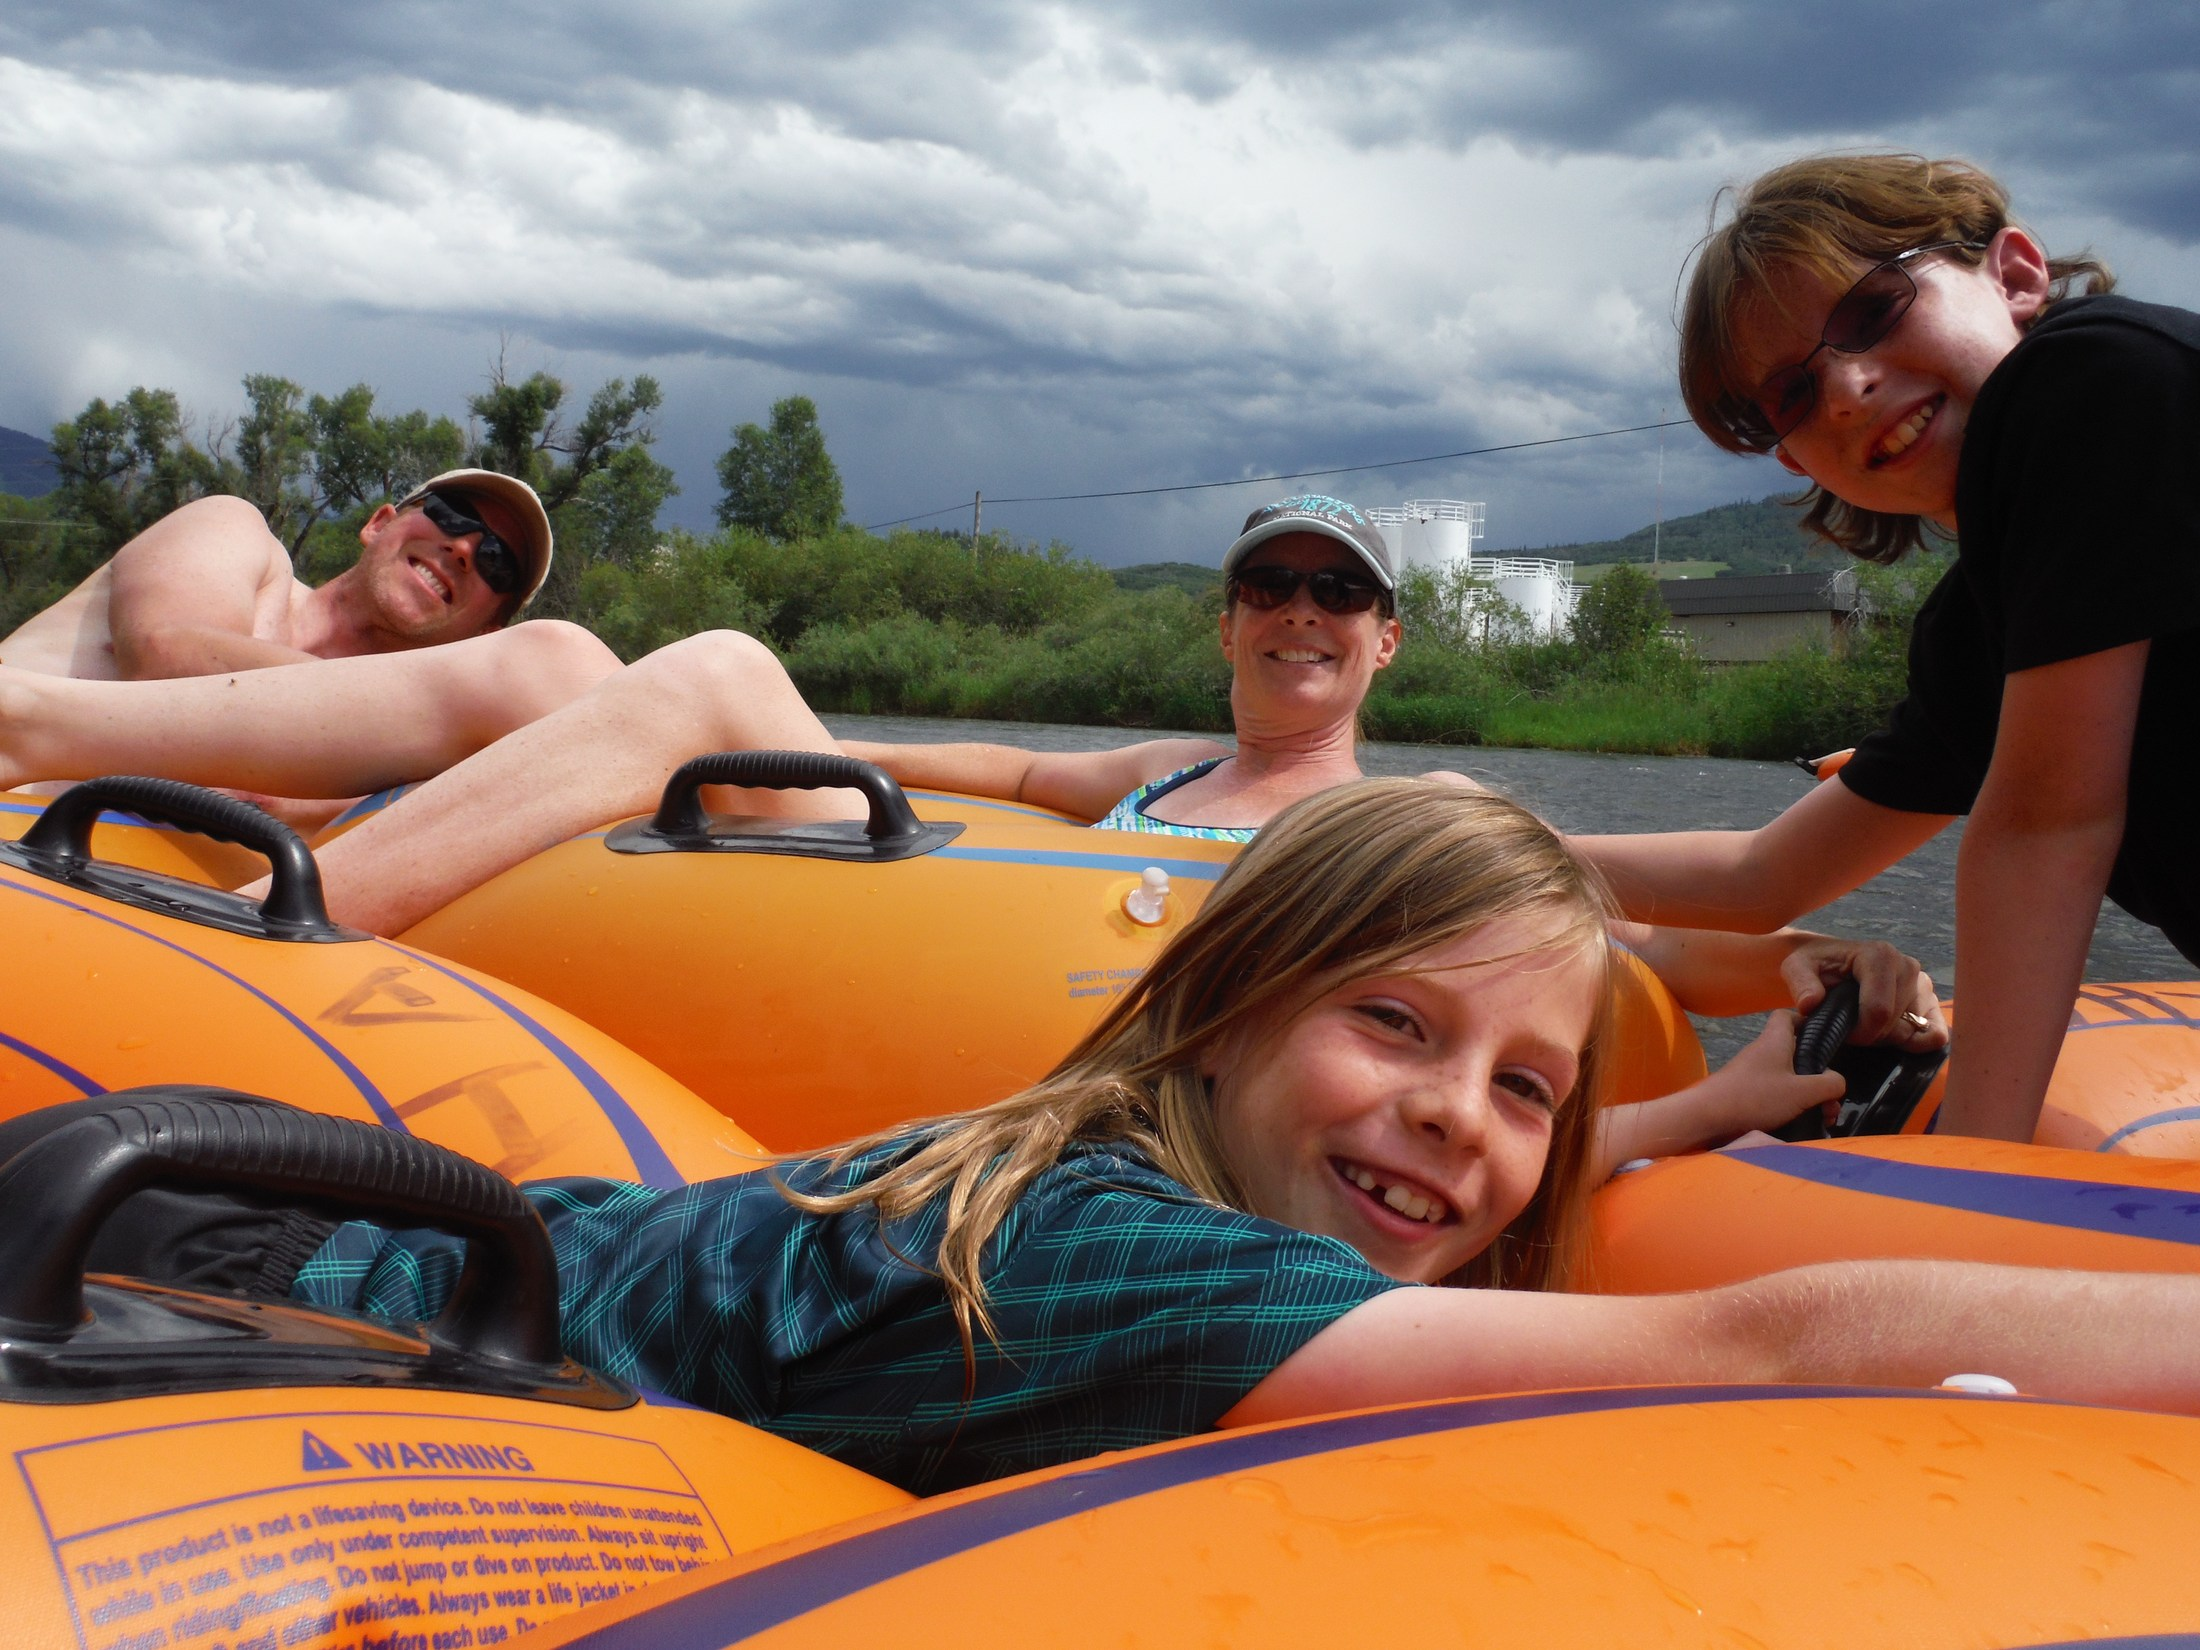 Tubing down the Yampa River near Steamboat Springs